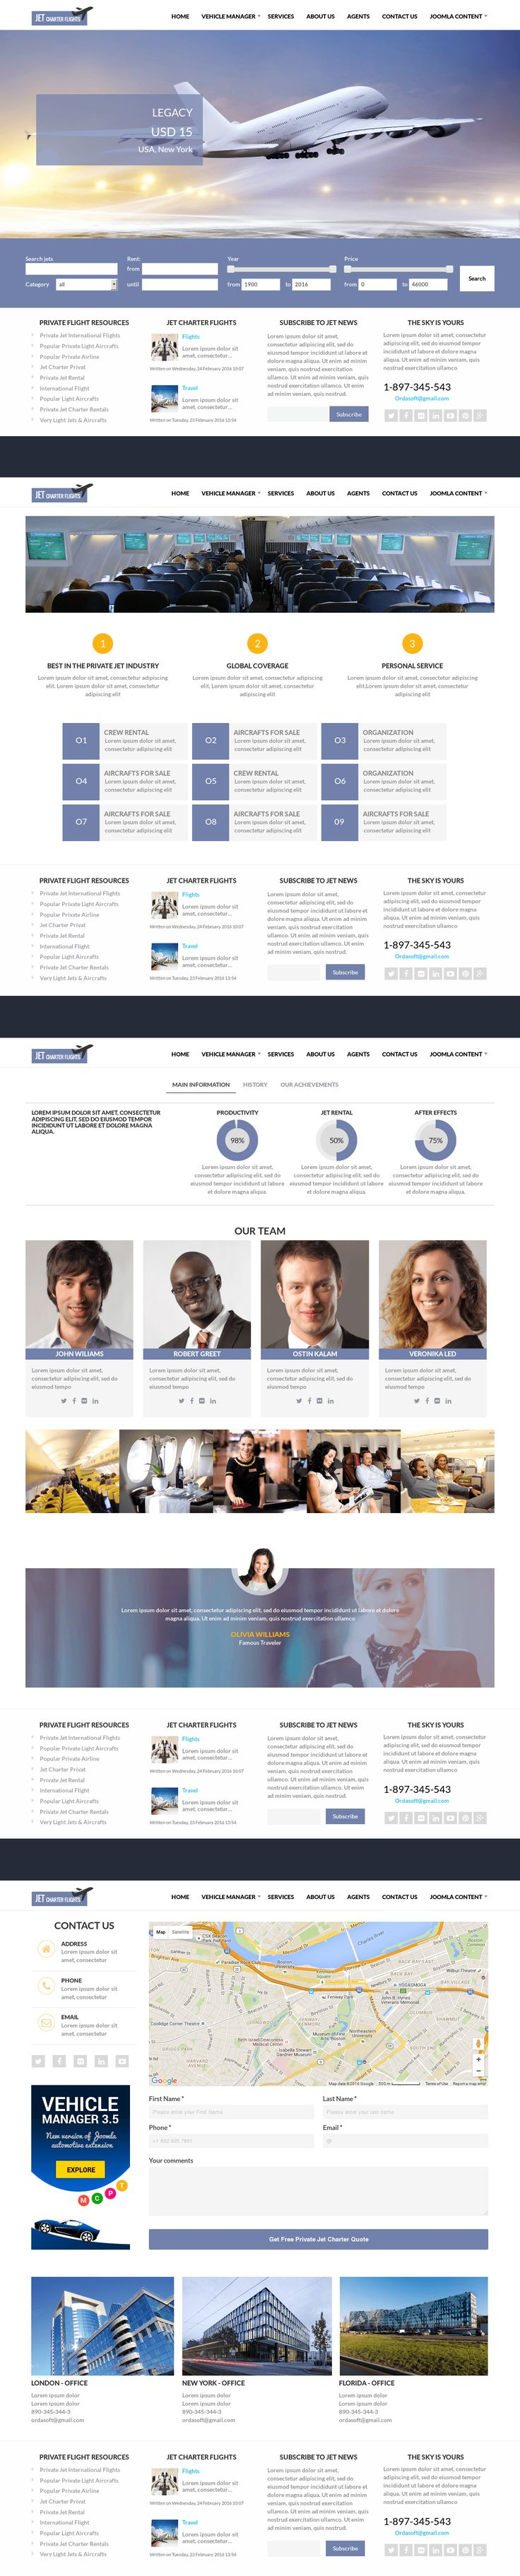 Jet Charter Flights is new fresh and responsive Joomla airline template with thoroughly thought design and robust functionality specially tailored for jet charter companies. Also this airline website template can be used for providing private jet International flights services, web jet reservation, private jet rentals, private aircrafts and airline websites.